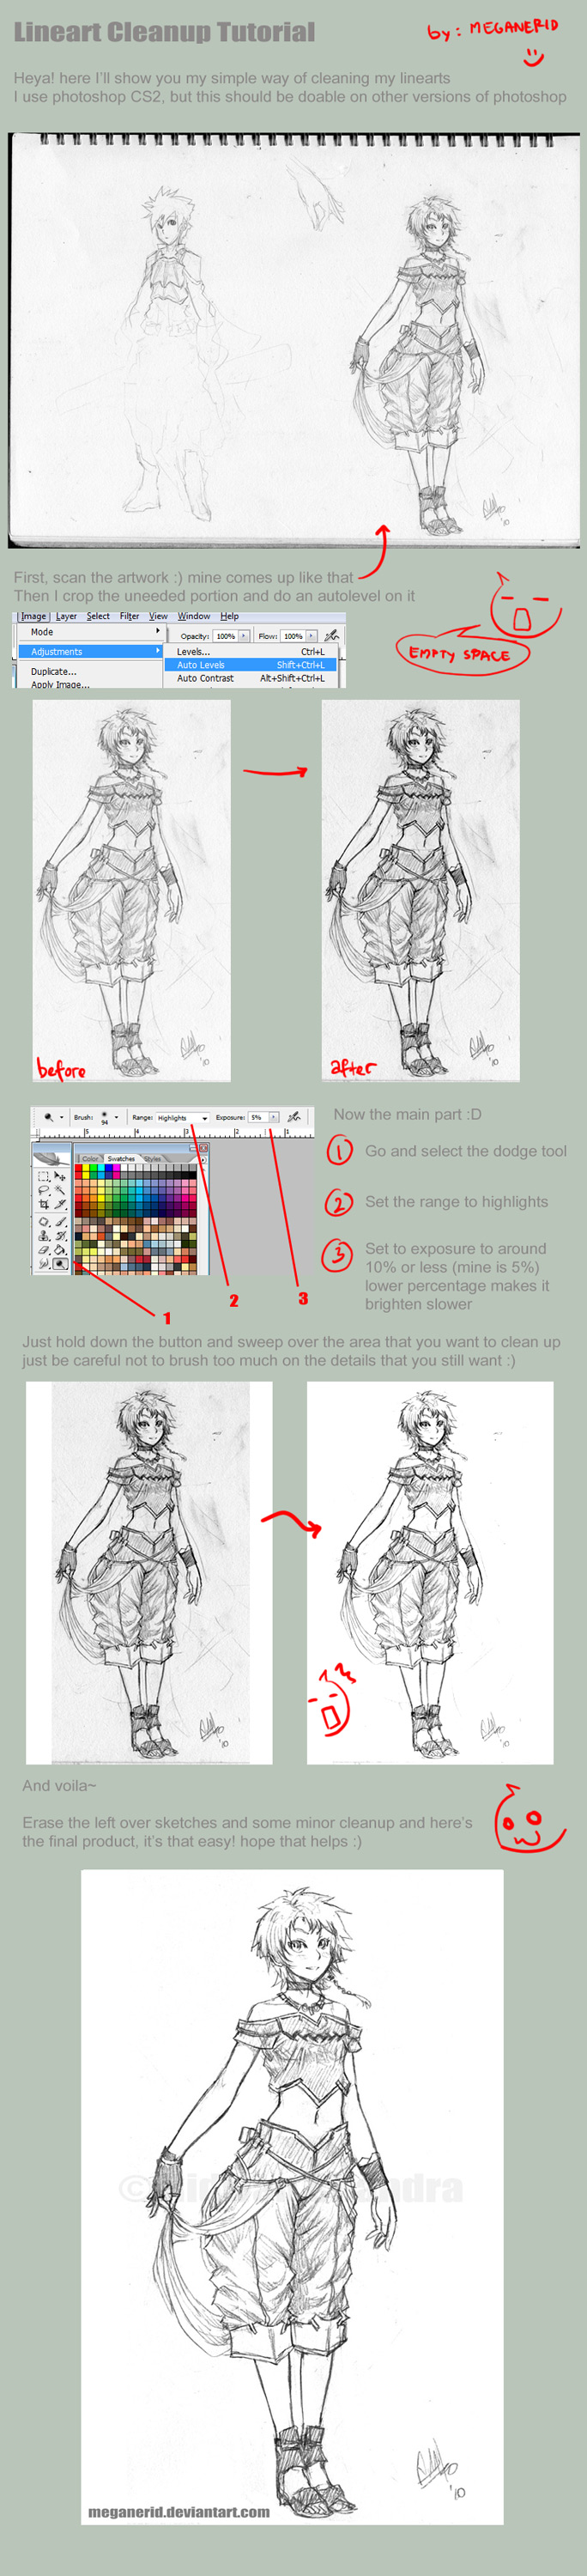 Lineart clean up tutorial by meganerid on deviantart lineart clean up tutorial by meganerid lineart clean up tutorial by meganerid baditri Choice Image